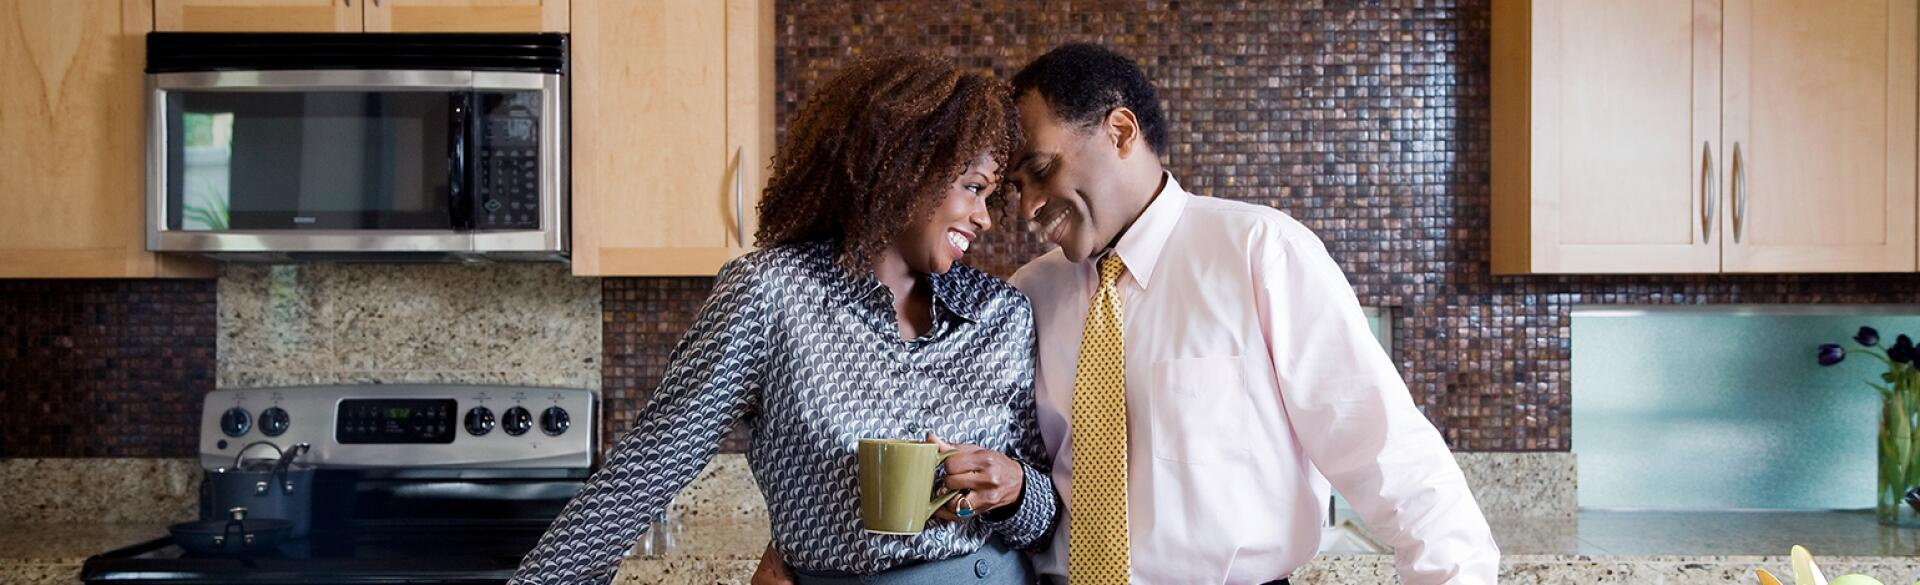 image_of_black_couple_touching_foreheads_in_kitchen_GettyImages-91497683_1540.jpg